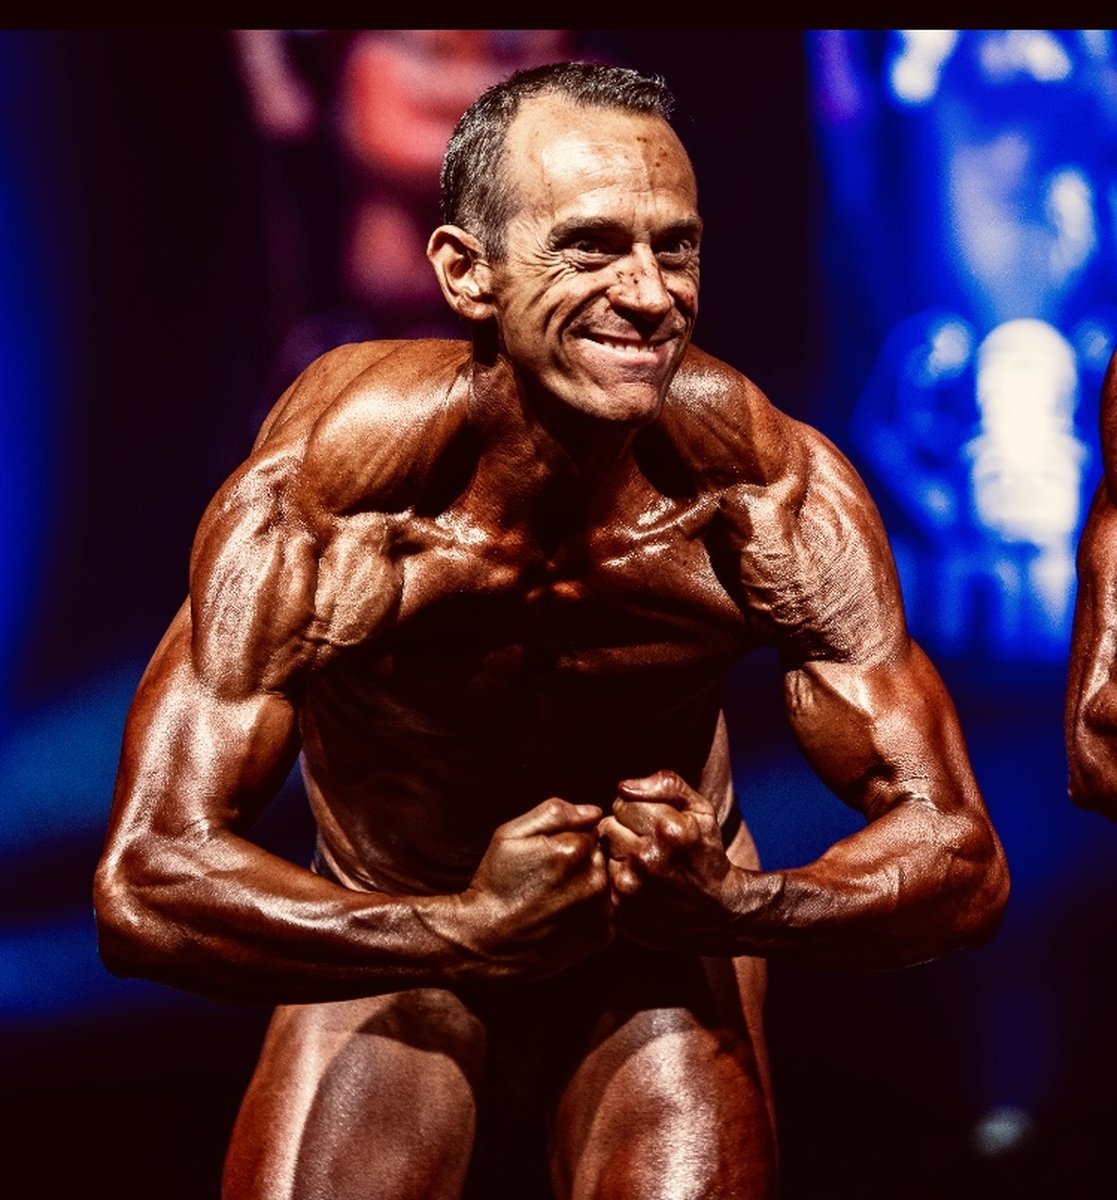 image of image: 23 of 32Tim poses at the 2019 BNBF Central Contest on his way to collect 3<sup>rd</sup> spot in the Over 50s category.